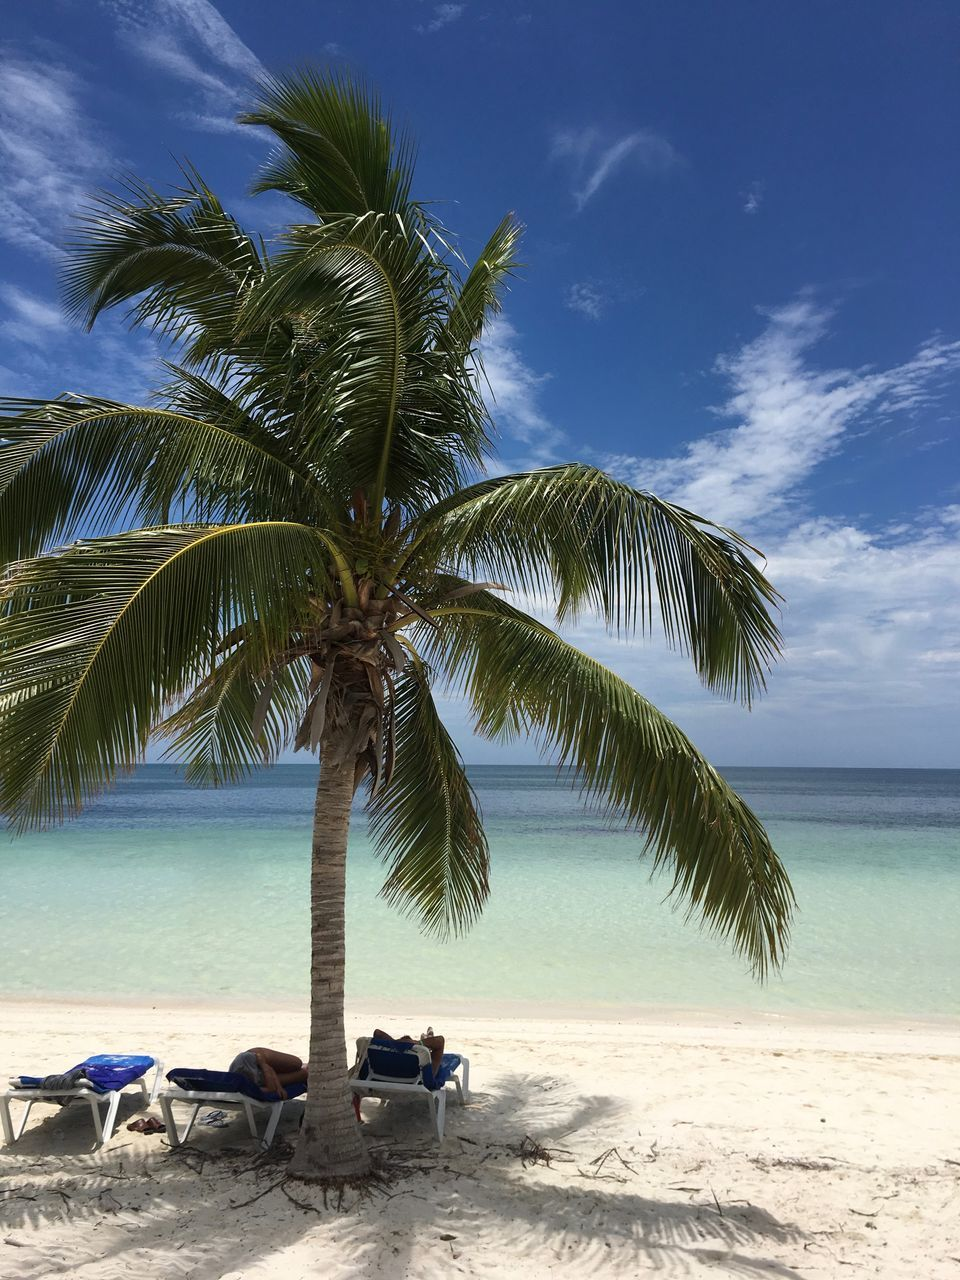 beach, sea, palm tree, sand, sky, tree, cloud - sky, nature, scenics, horizon over water, tranquility, beauty in nature, tranquil scene, water, relaxation, outdoors, day, blue, no people